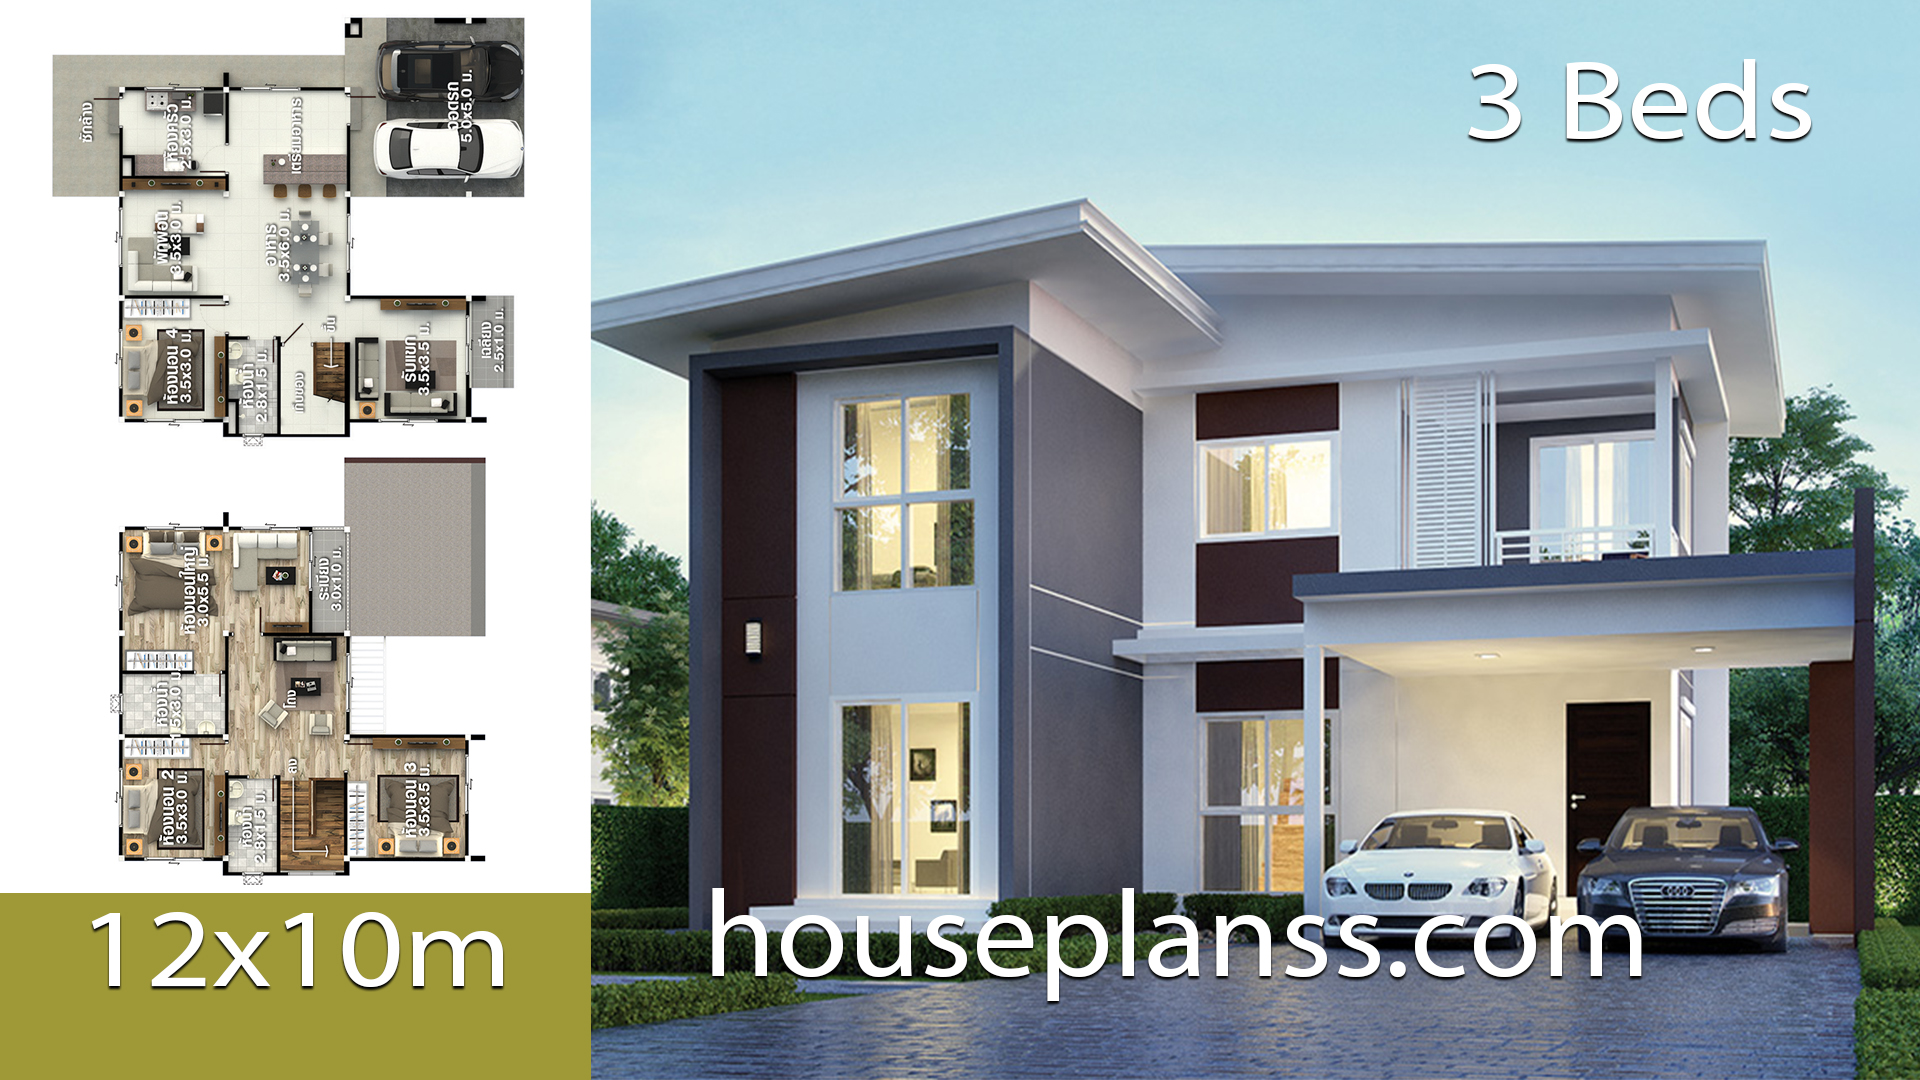 House Design Idea 12x10 With 3 Bedrooms Home Ideas